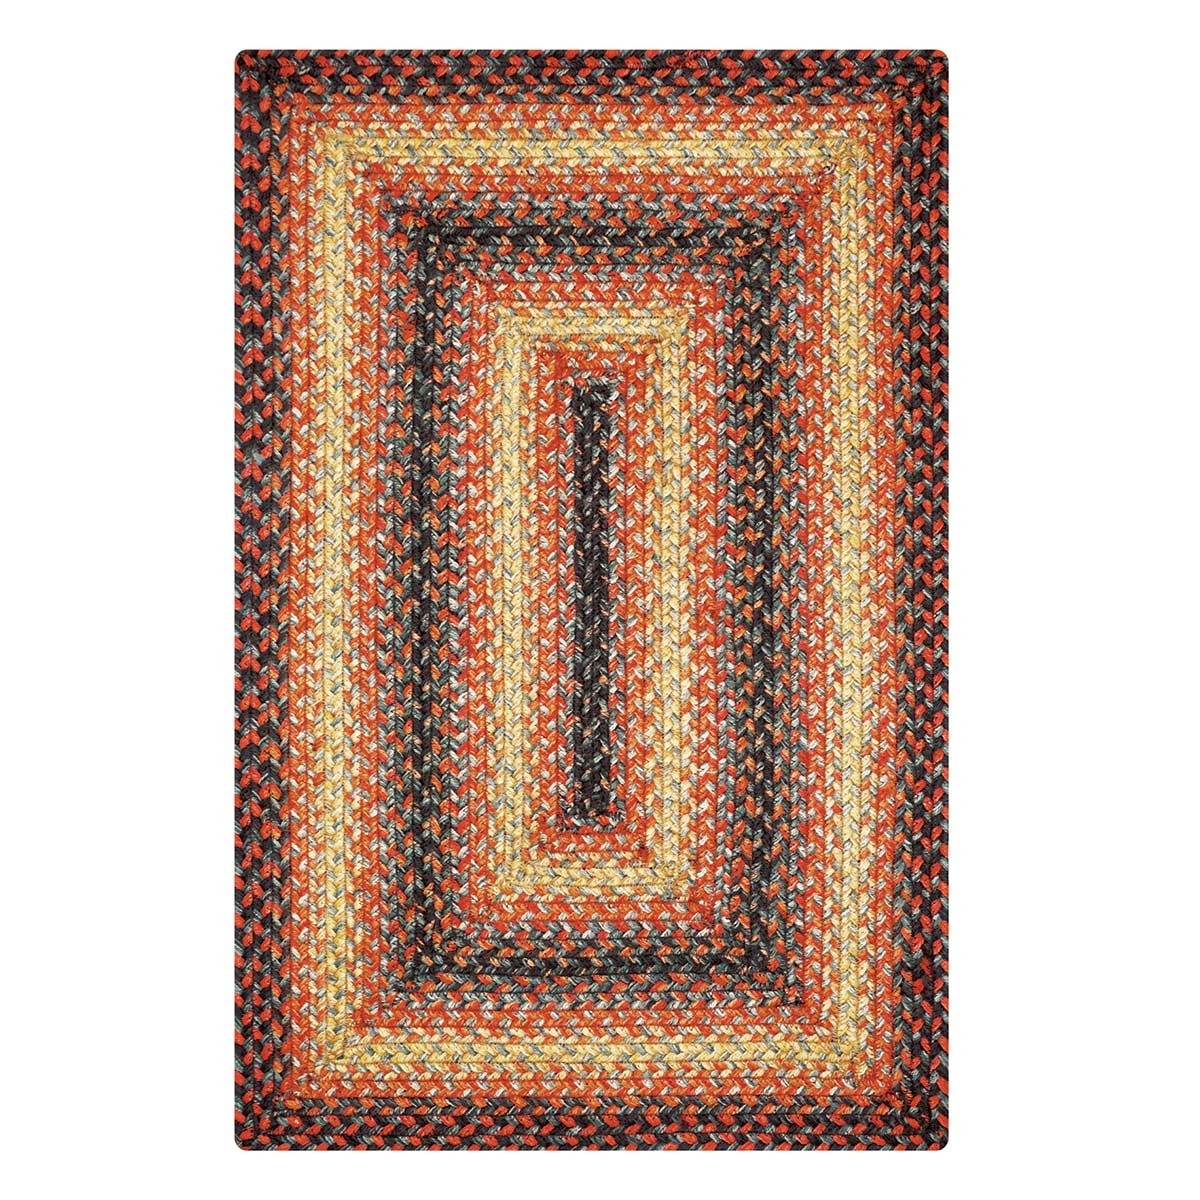 Fireside Jute Braided Rugs